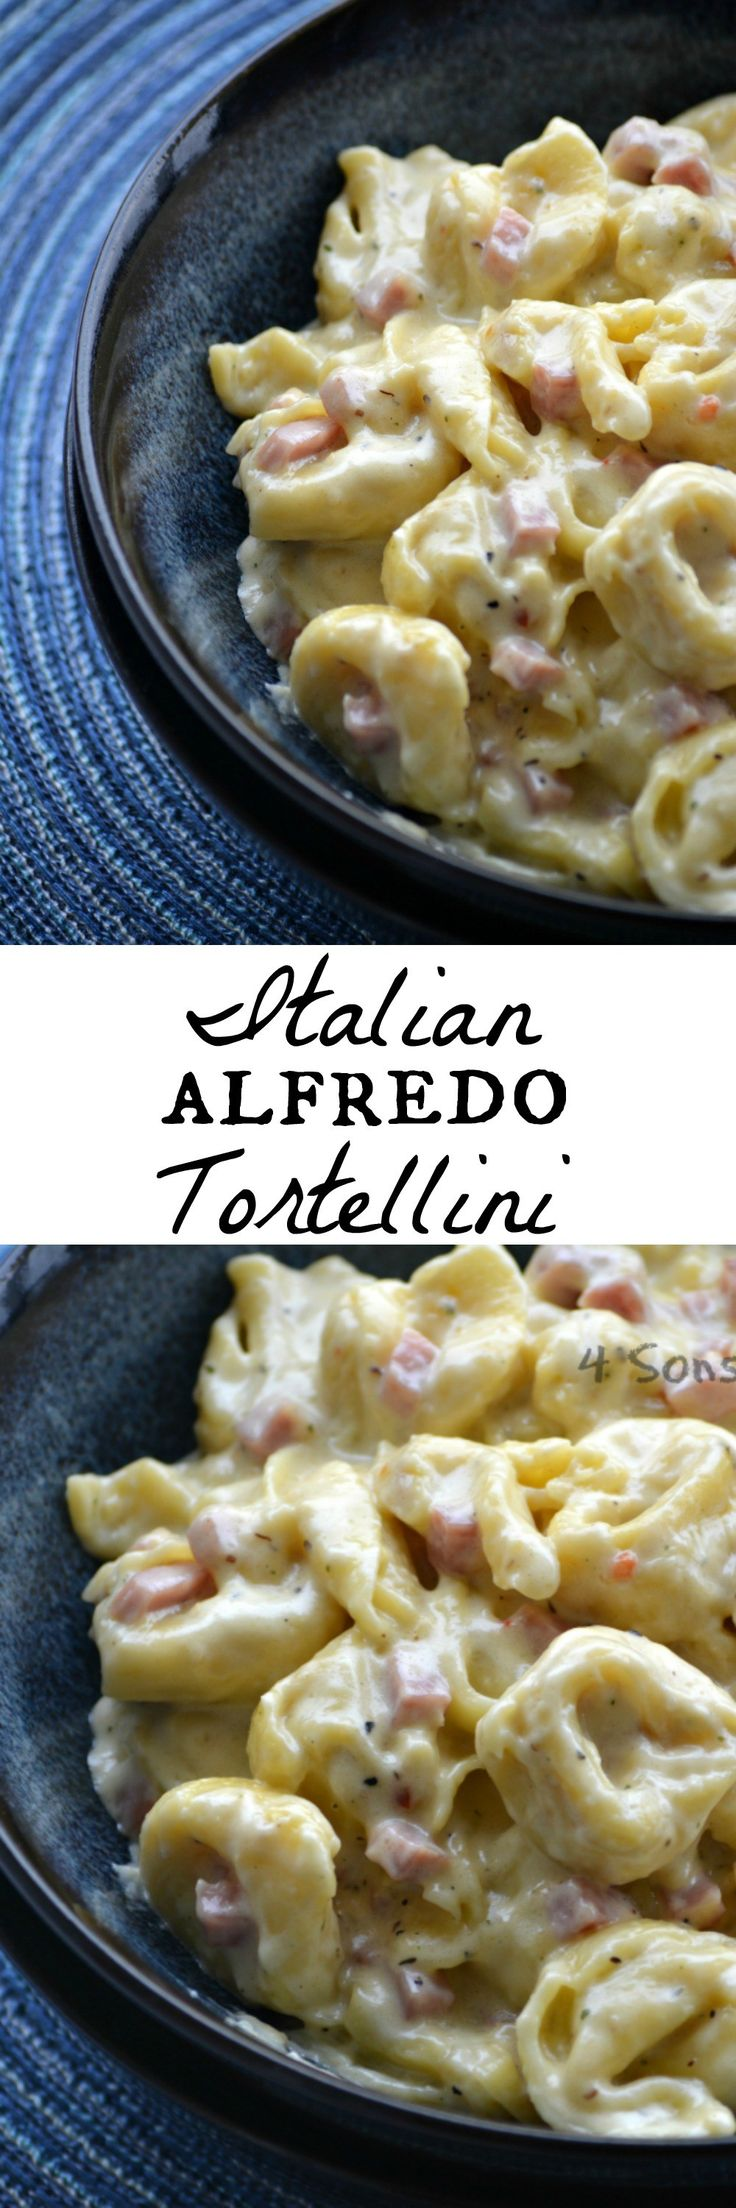 It's quick, easy, and oh-so creamy. This Italian Alfredo Tortellini with Ham makes a yummy lunch or dinner. It's perfect for busy weeknights, or even on lazy days when you need to serve a crowd. However you choose to serve it this Italian Alfredo Tortellini With Ham is a simple meal that's seasoned to perfection.